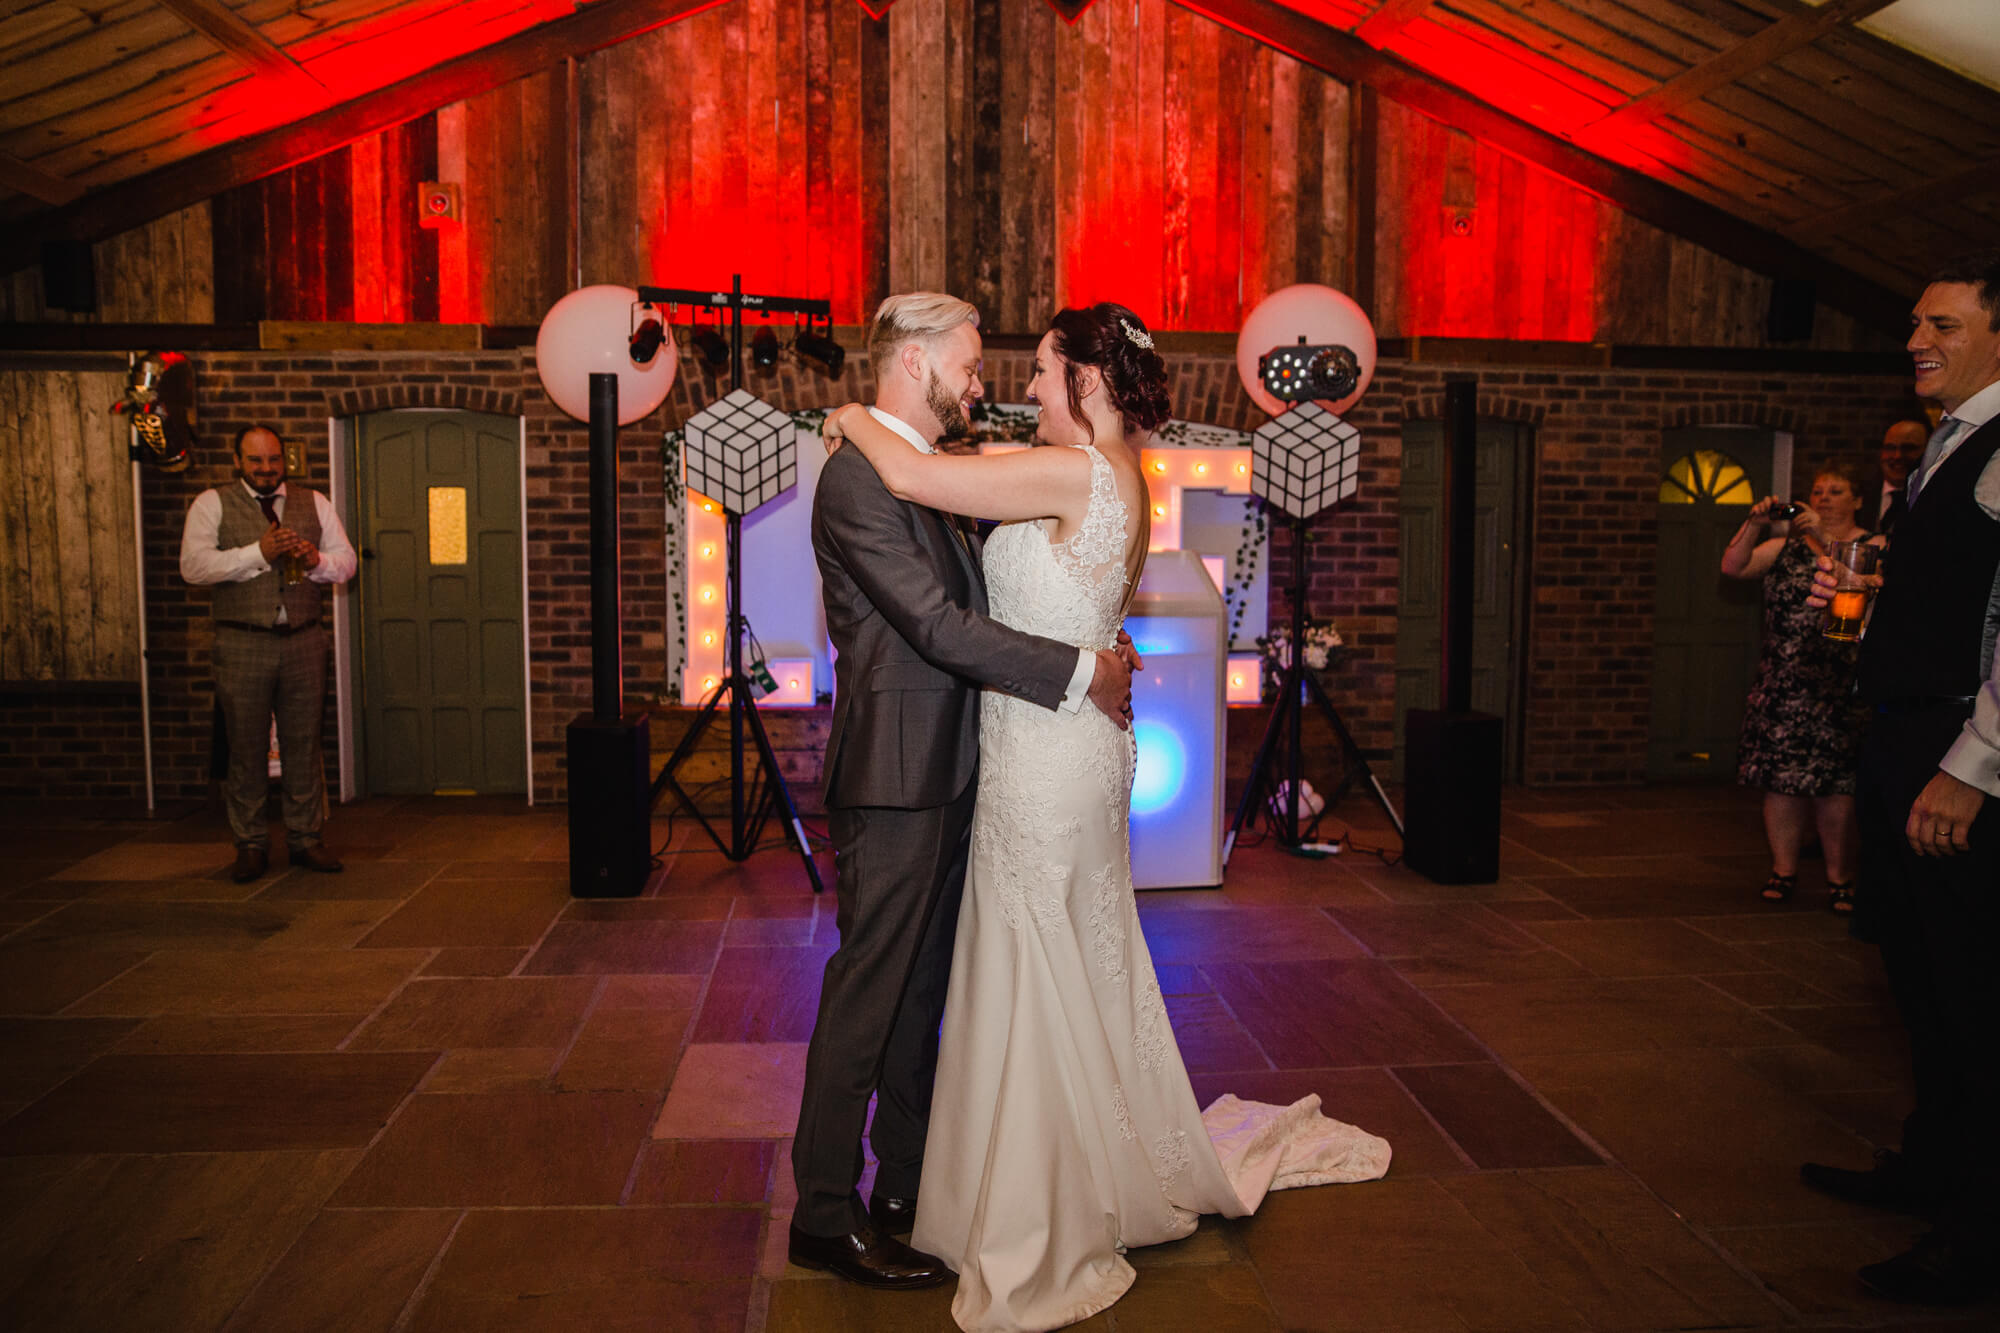 wide angle lens photograph of wedded couple on dance floor